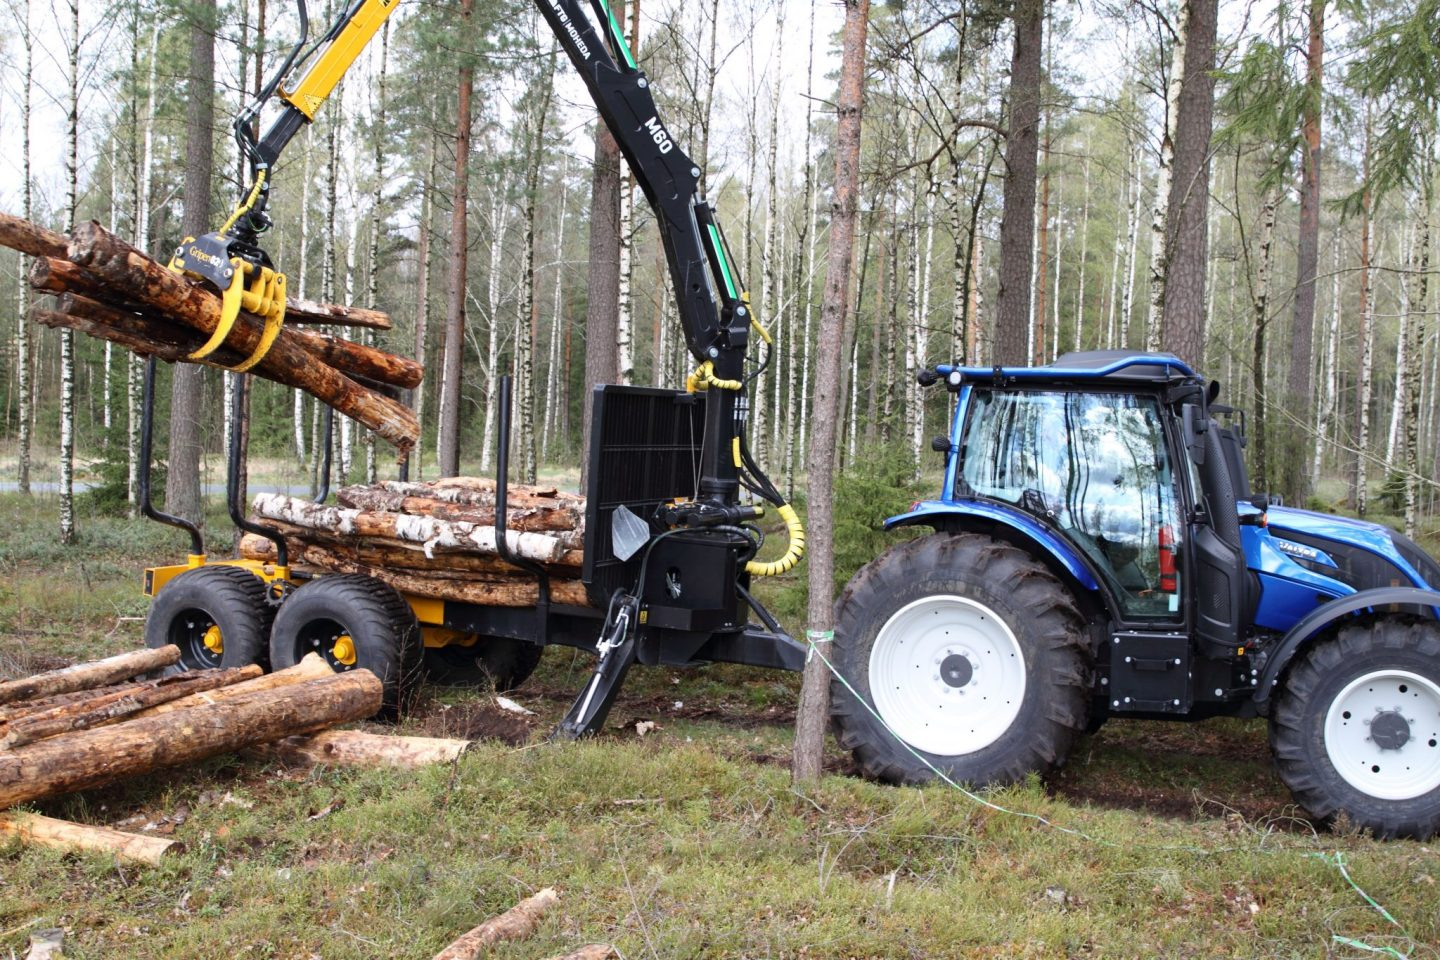 Tree farmer equipment #1 – what do you need to manage your own forest?